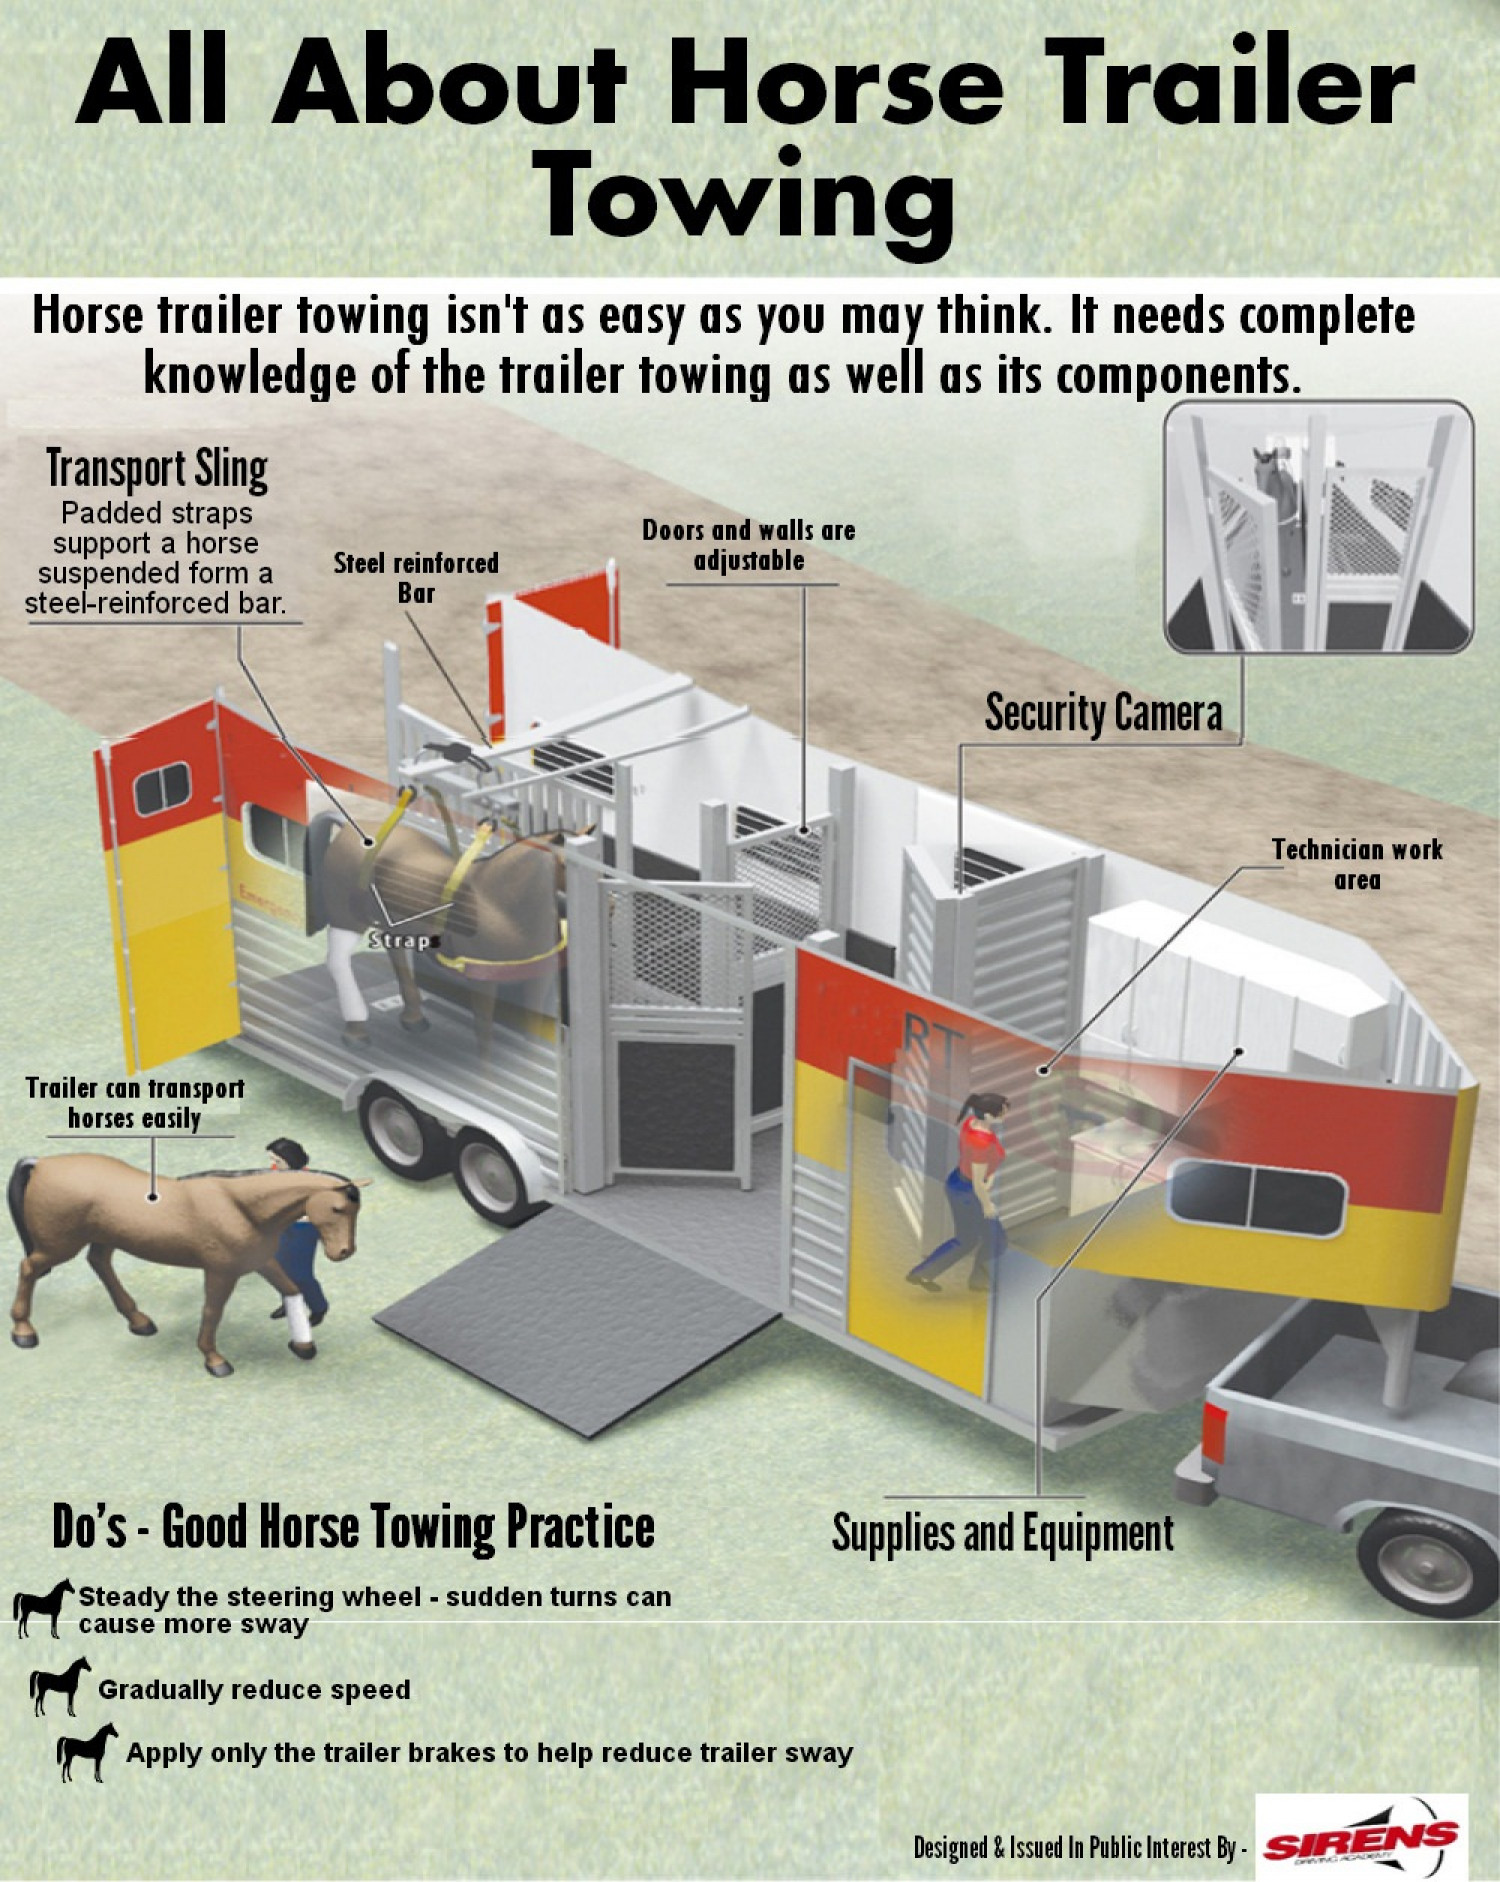 All About Horse Trailer Towing Infographic